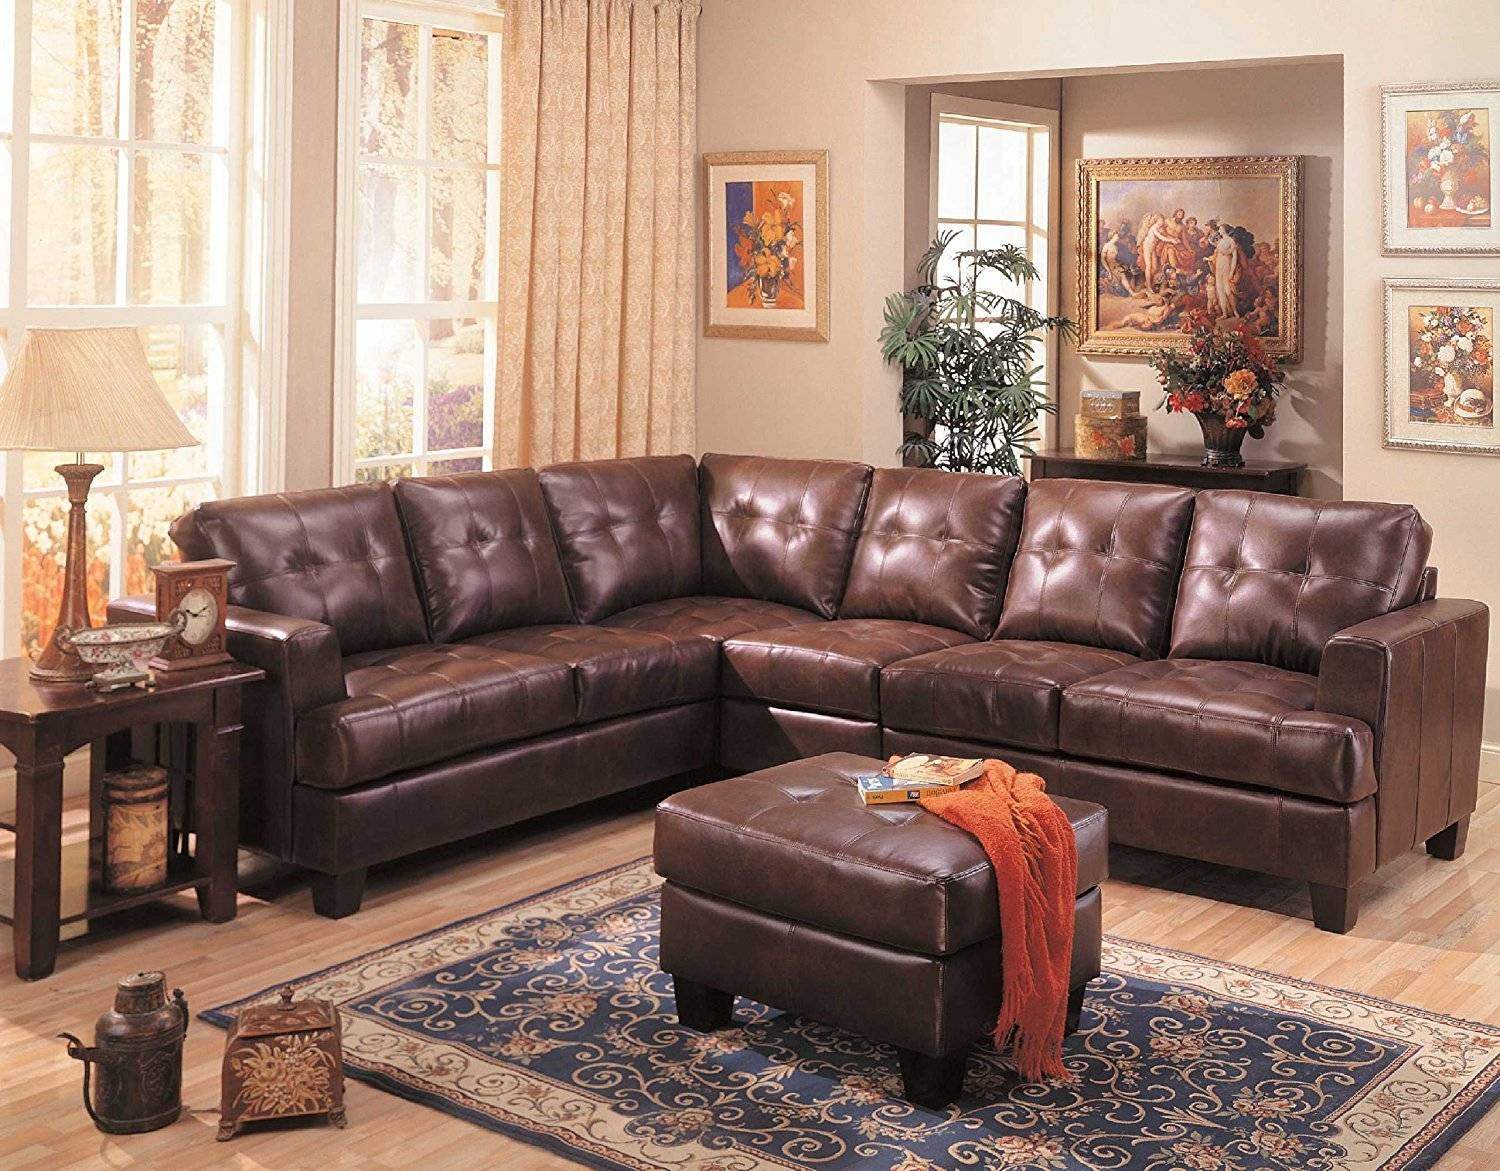 Best Top Rated Sectional Sofas 60 With Additional Sectional Vs within Eggplant Sectional Sofa (Image 3 of 30)